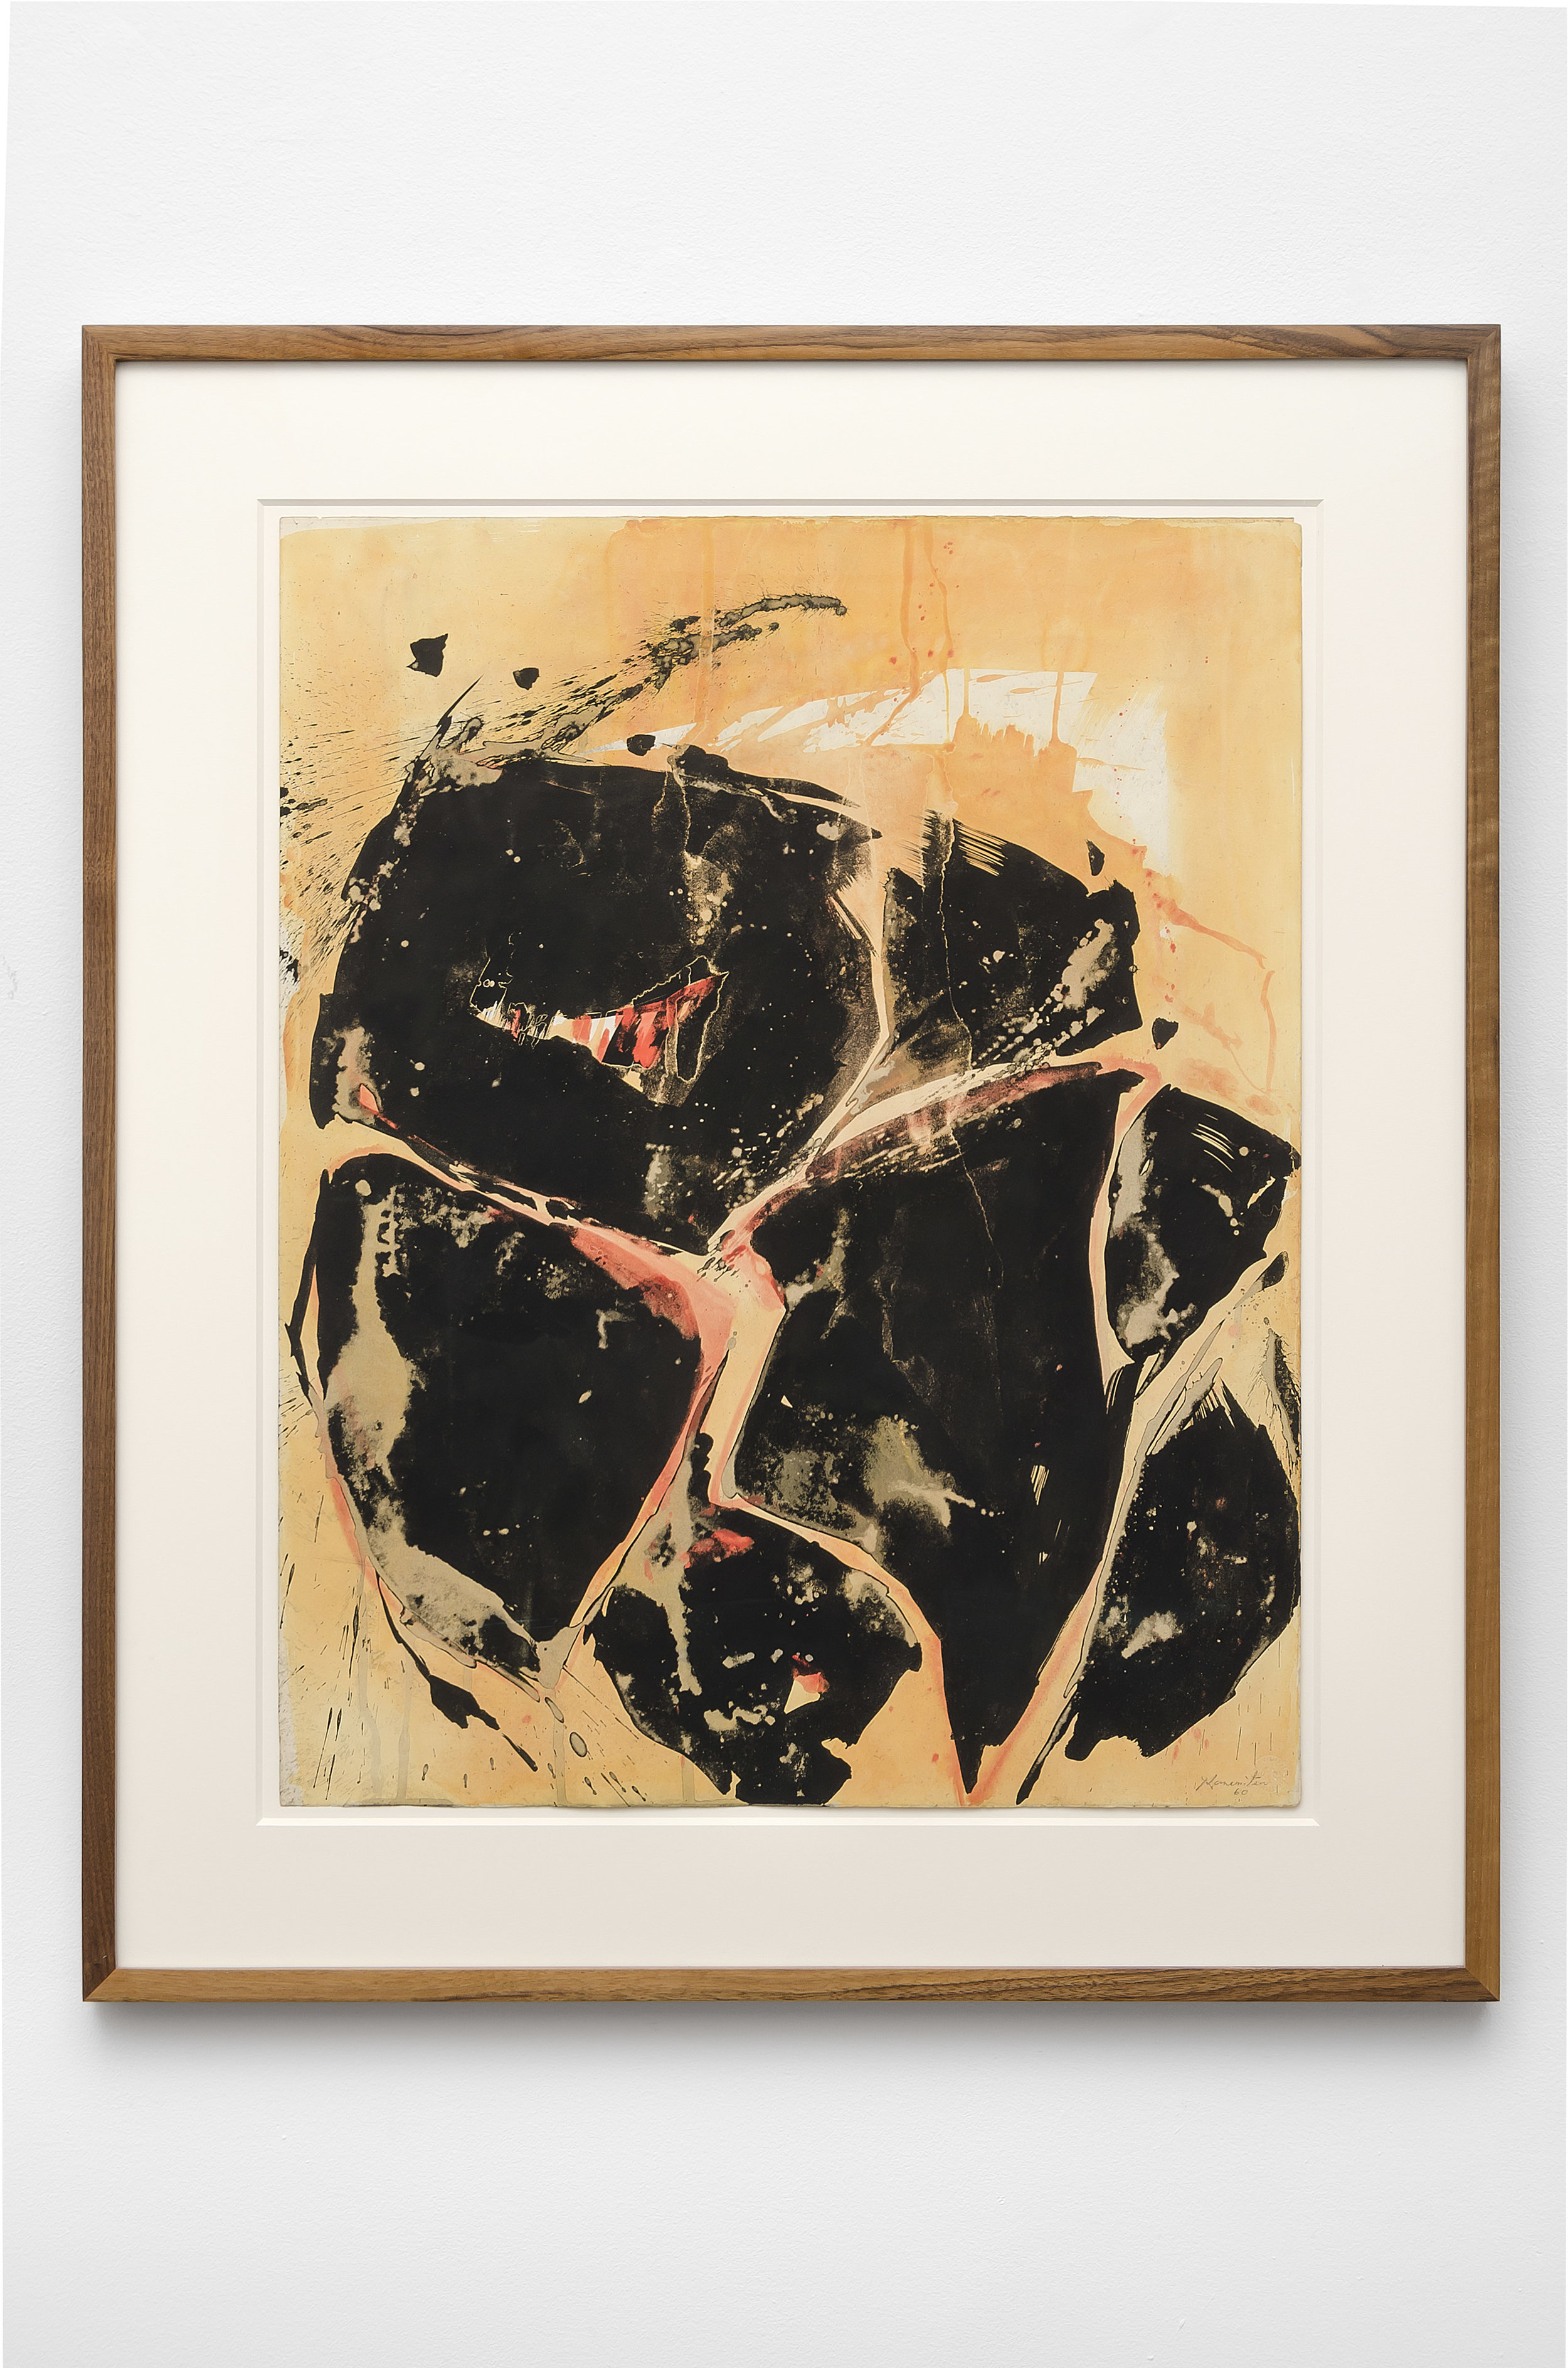 Yellow-Orange-Black , 1960 sumi ink and watercolor on Strathmore 29 x 22 7/8 inches; 73.7 x 58.1 centimeters